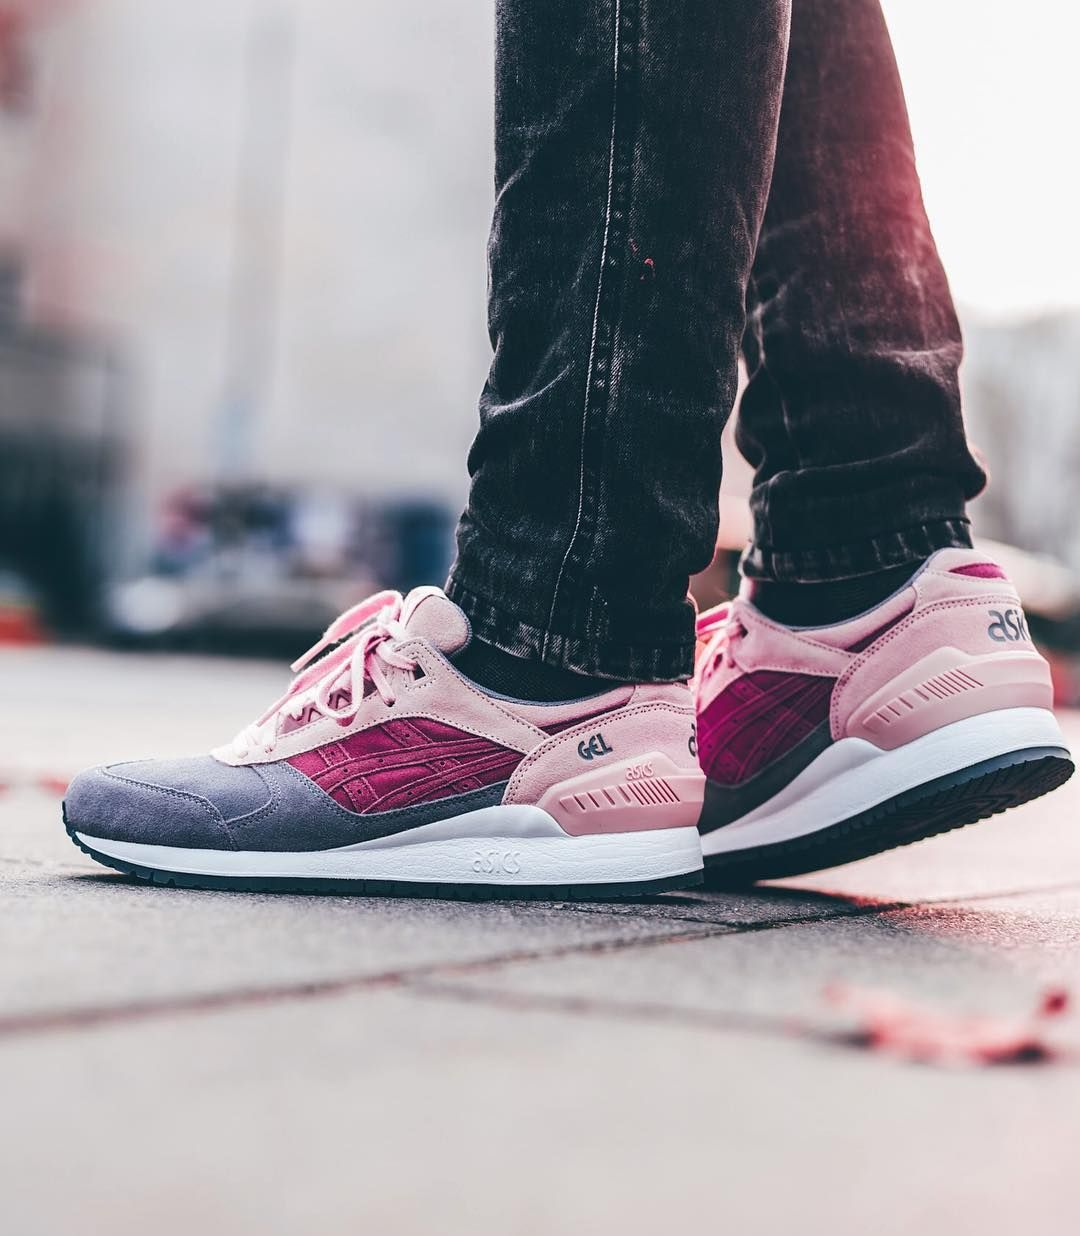 9699b4f0cf5c Asics Gel-Respector Mauve Wood avaliable in store and online at  www.streetsupply.